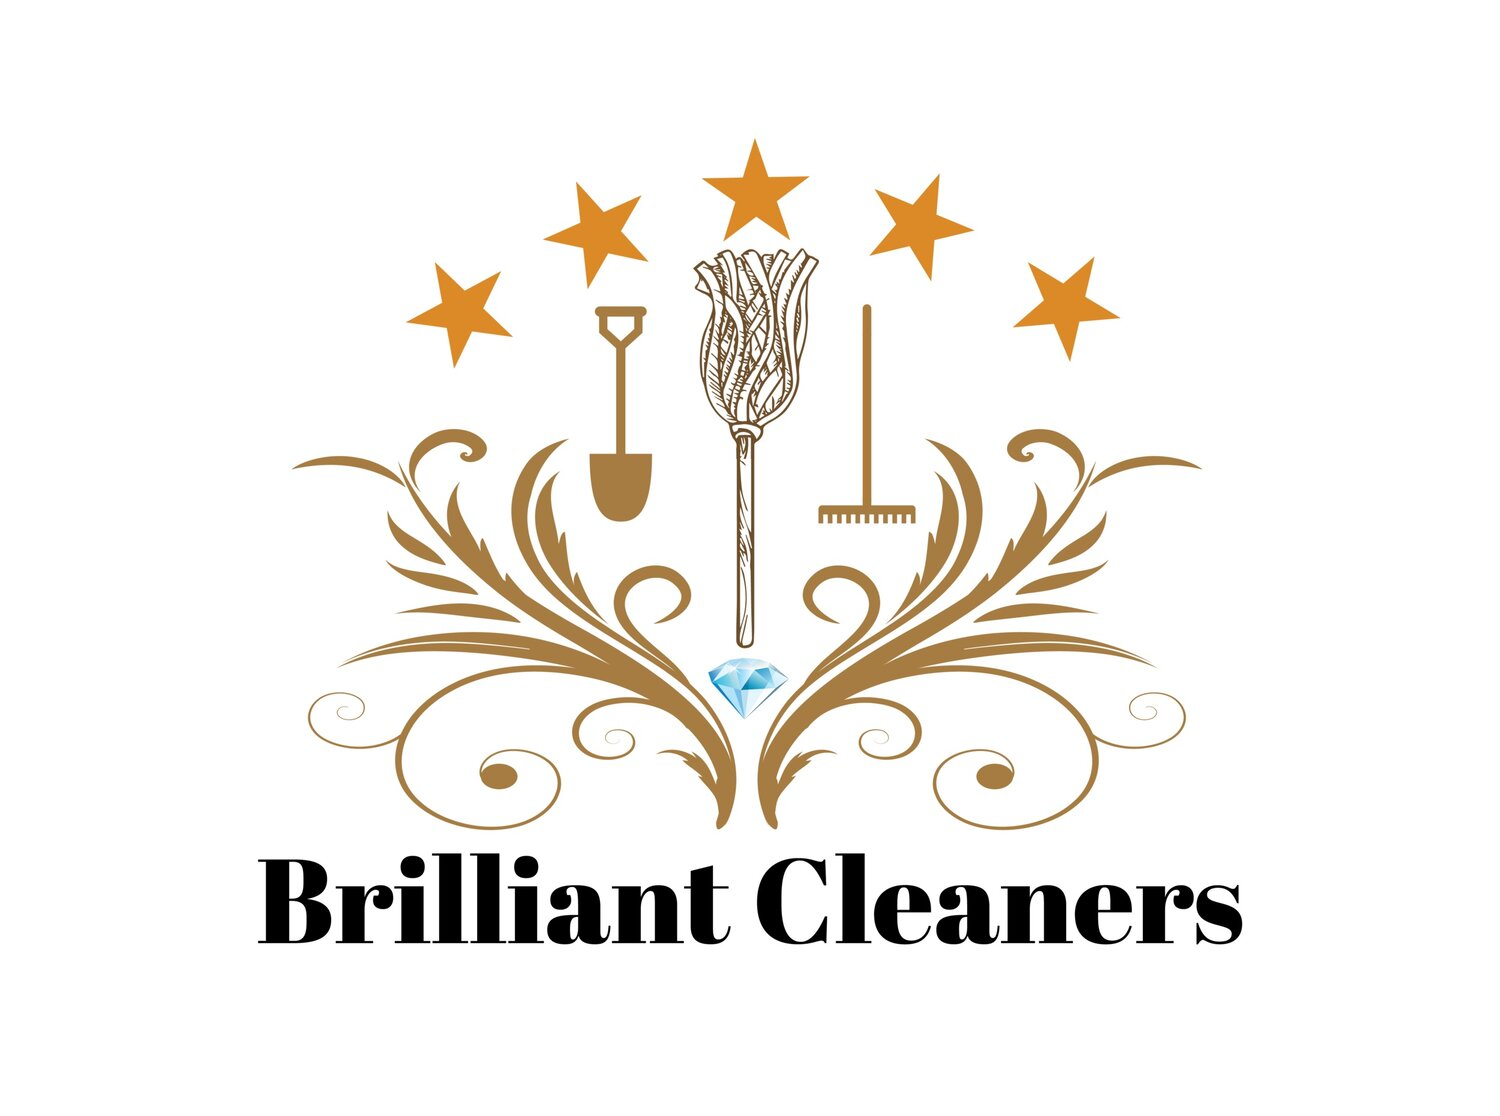 Brilliant Cleaners